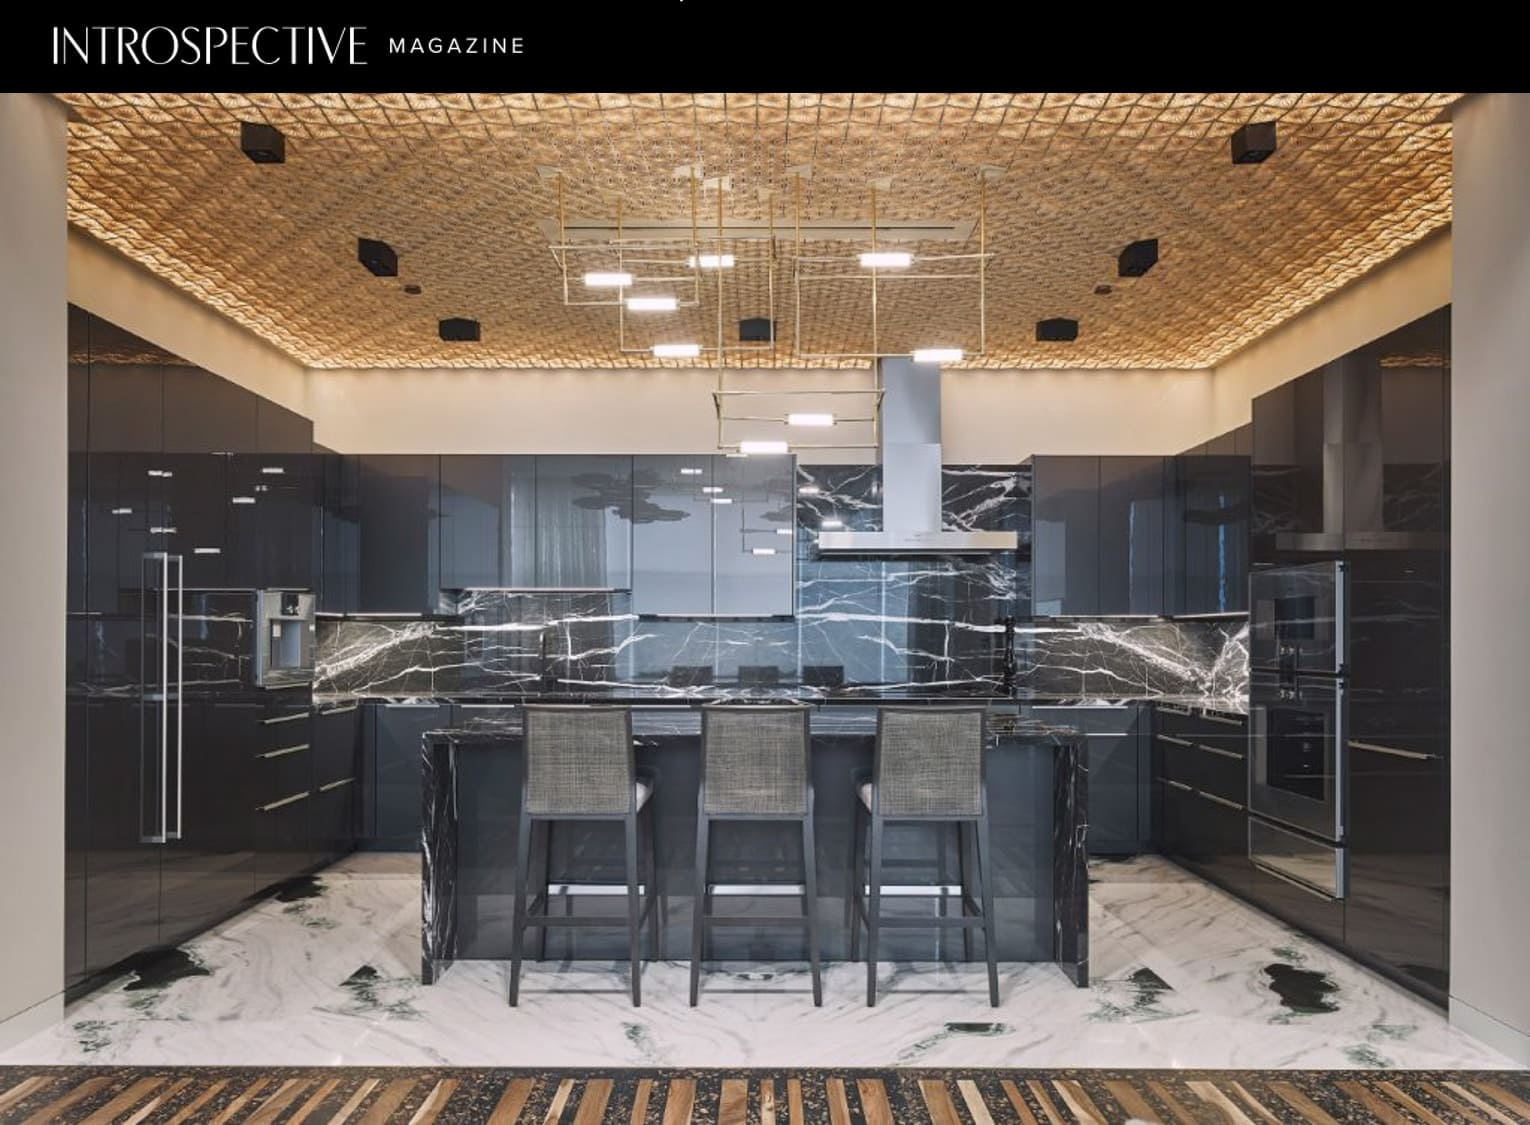 eggersmann all-black kitchen in penthouse of houston's arabella luxury high-rise